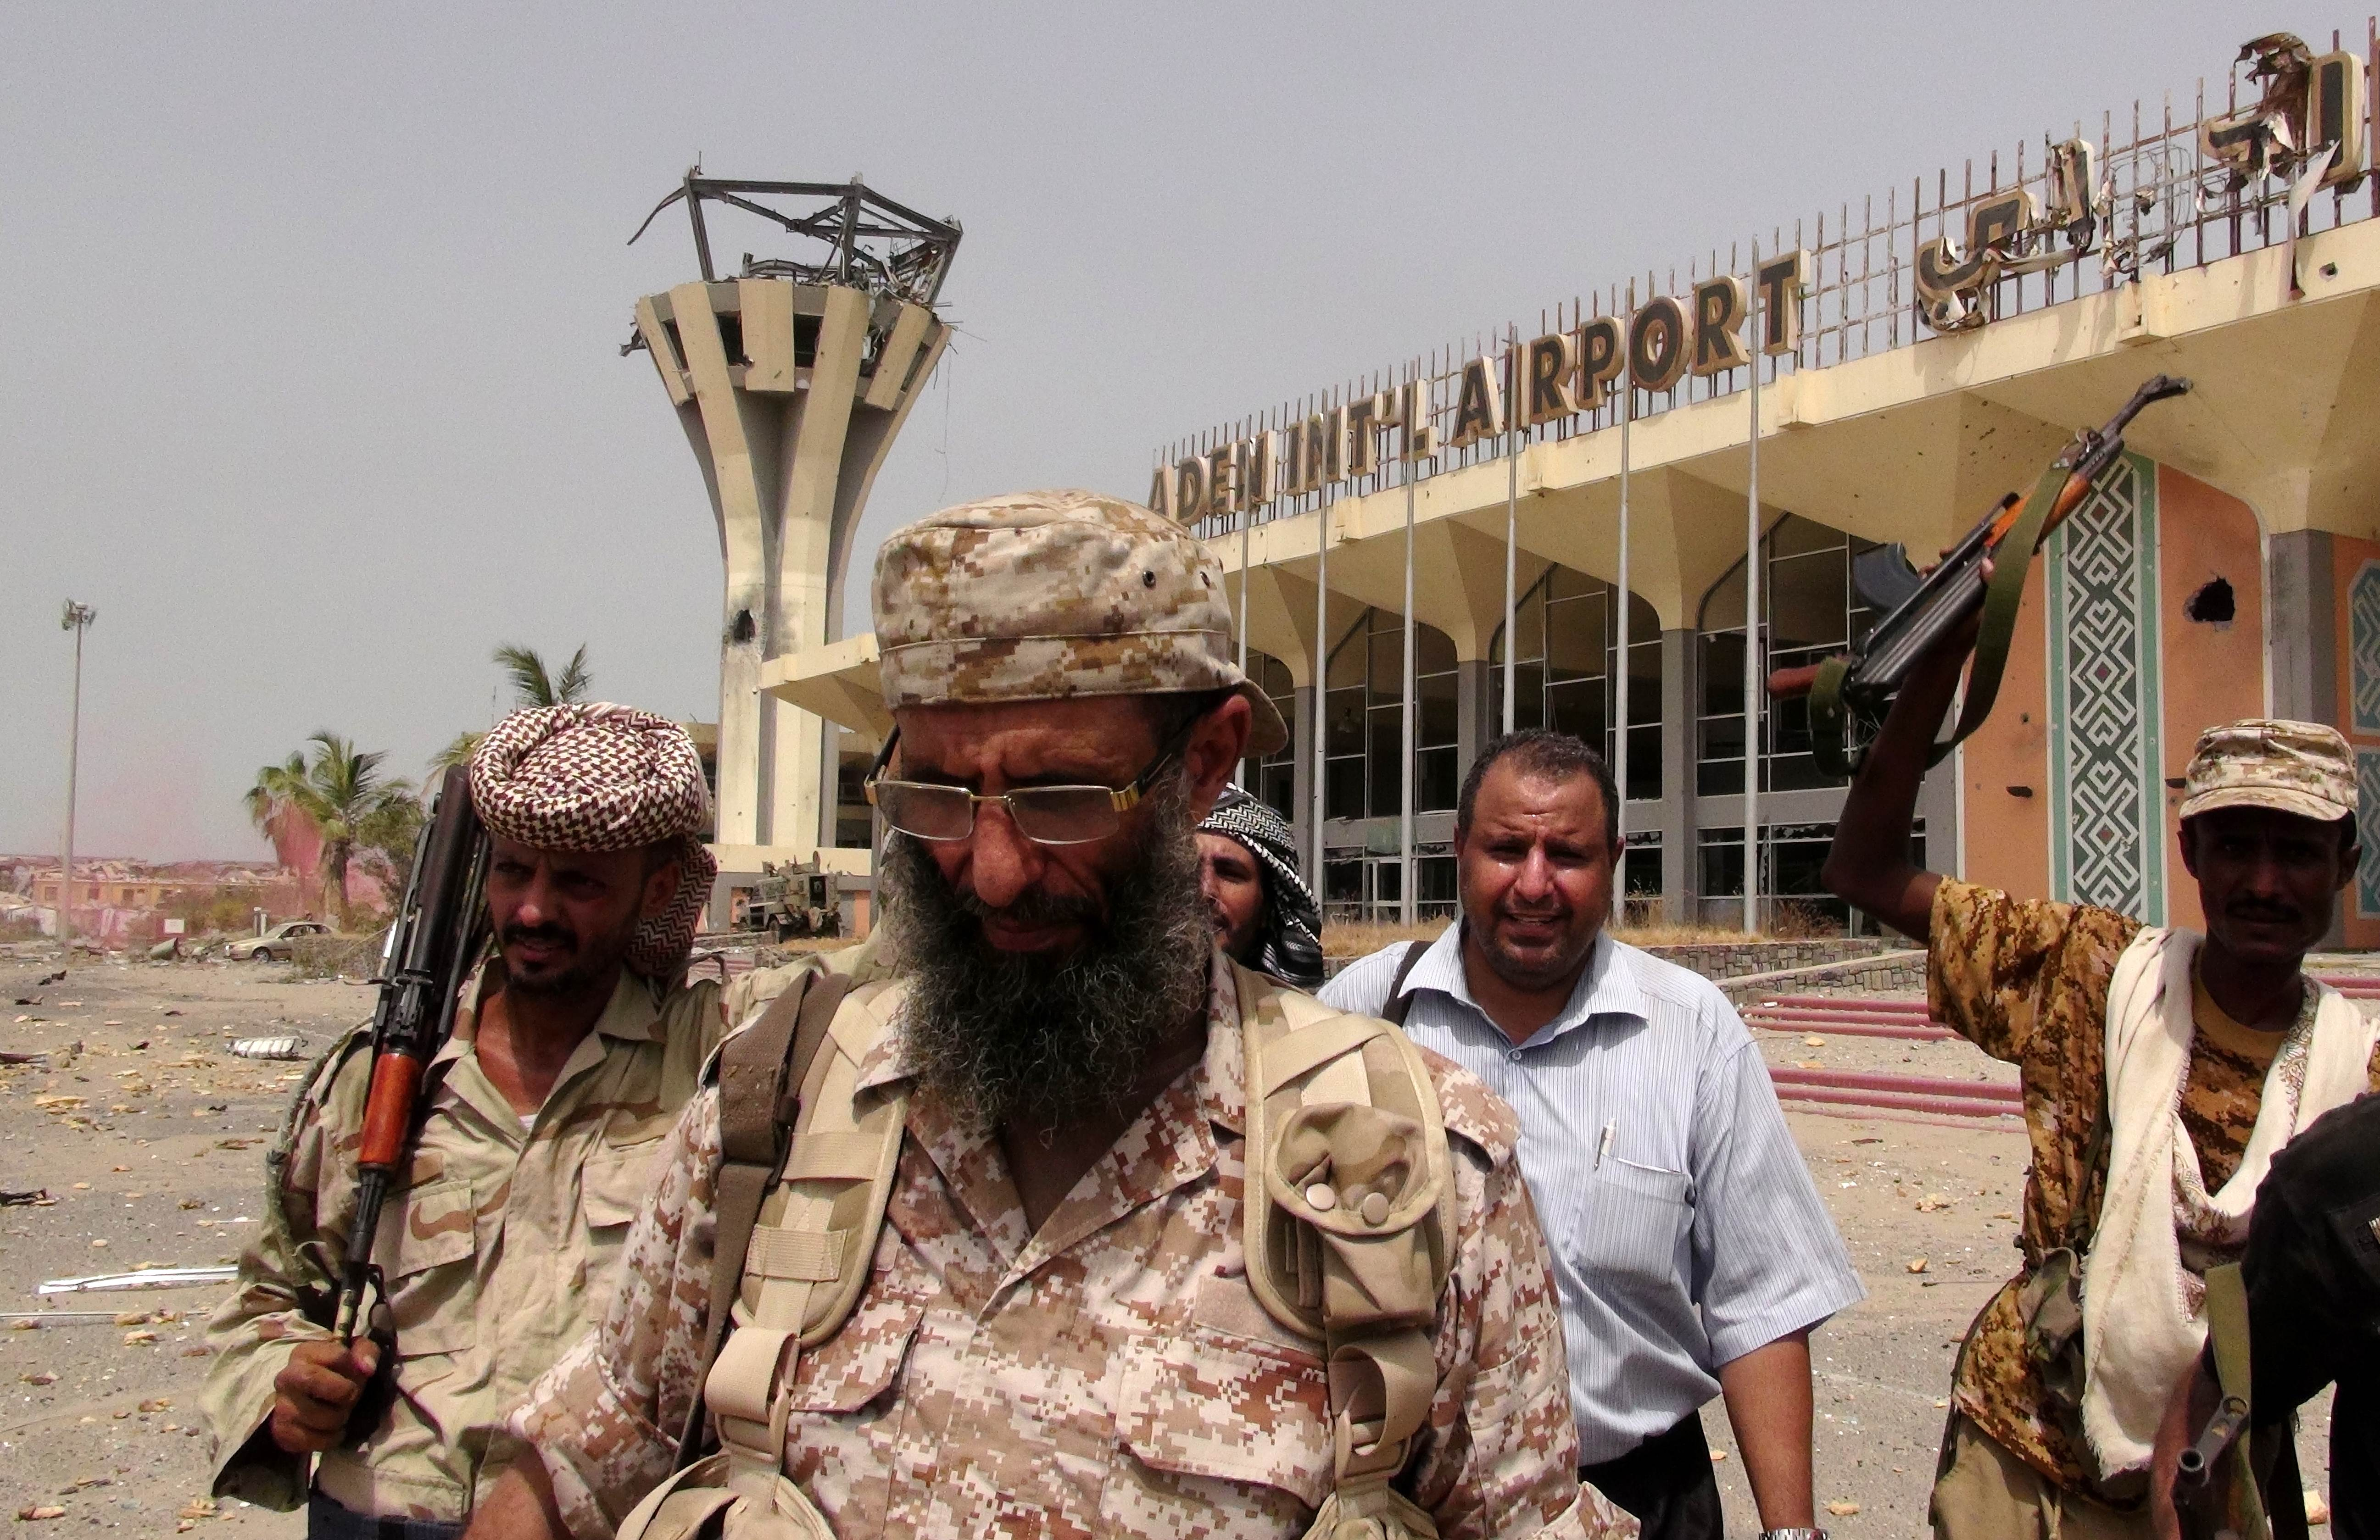 Armed militiamen loyal to Yemen's fugitive President Abde Rabbo Mansour Hadi stand Tuesday at the entrance to Aden's international airport, which they recaptured from Shiite Houthi rebels. Loyalists of Yemen's exiled president recaptured the airport in second city sealing a four-month battle with Iran-backed rebels with Saudi-led air and naval support, military sources said.   AFP-JIJI